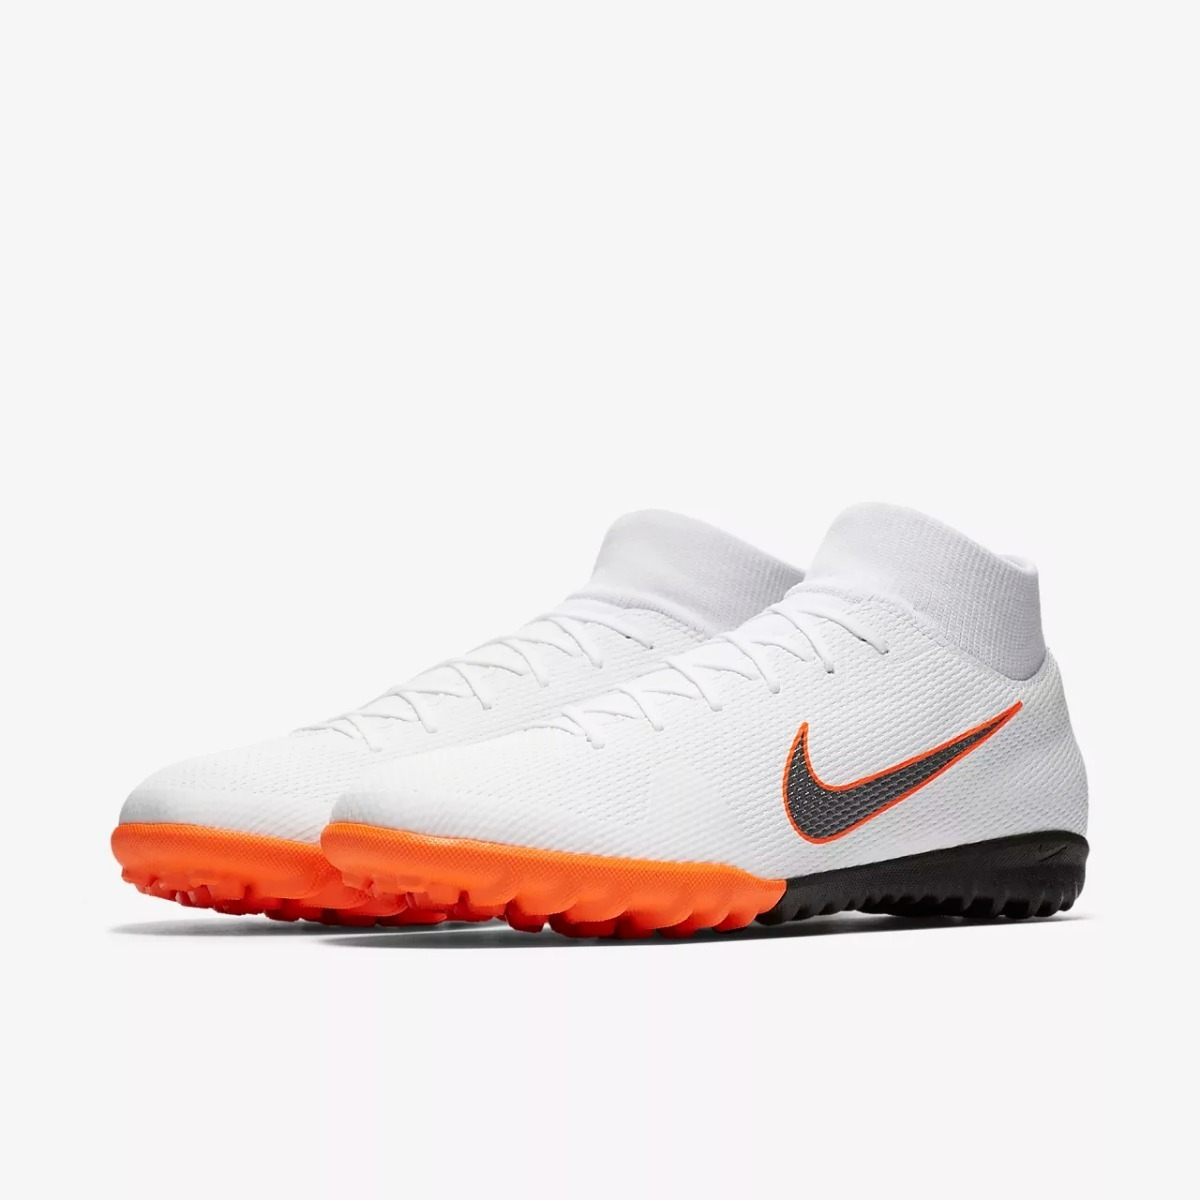 sports shoes 493ca c21ff botas nike mercurial superfly blancos futbol rapido turf. Cargando zoom.